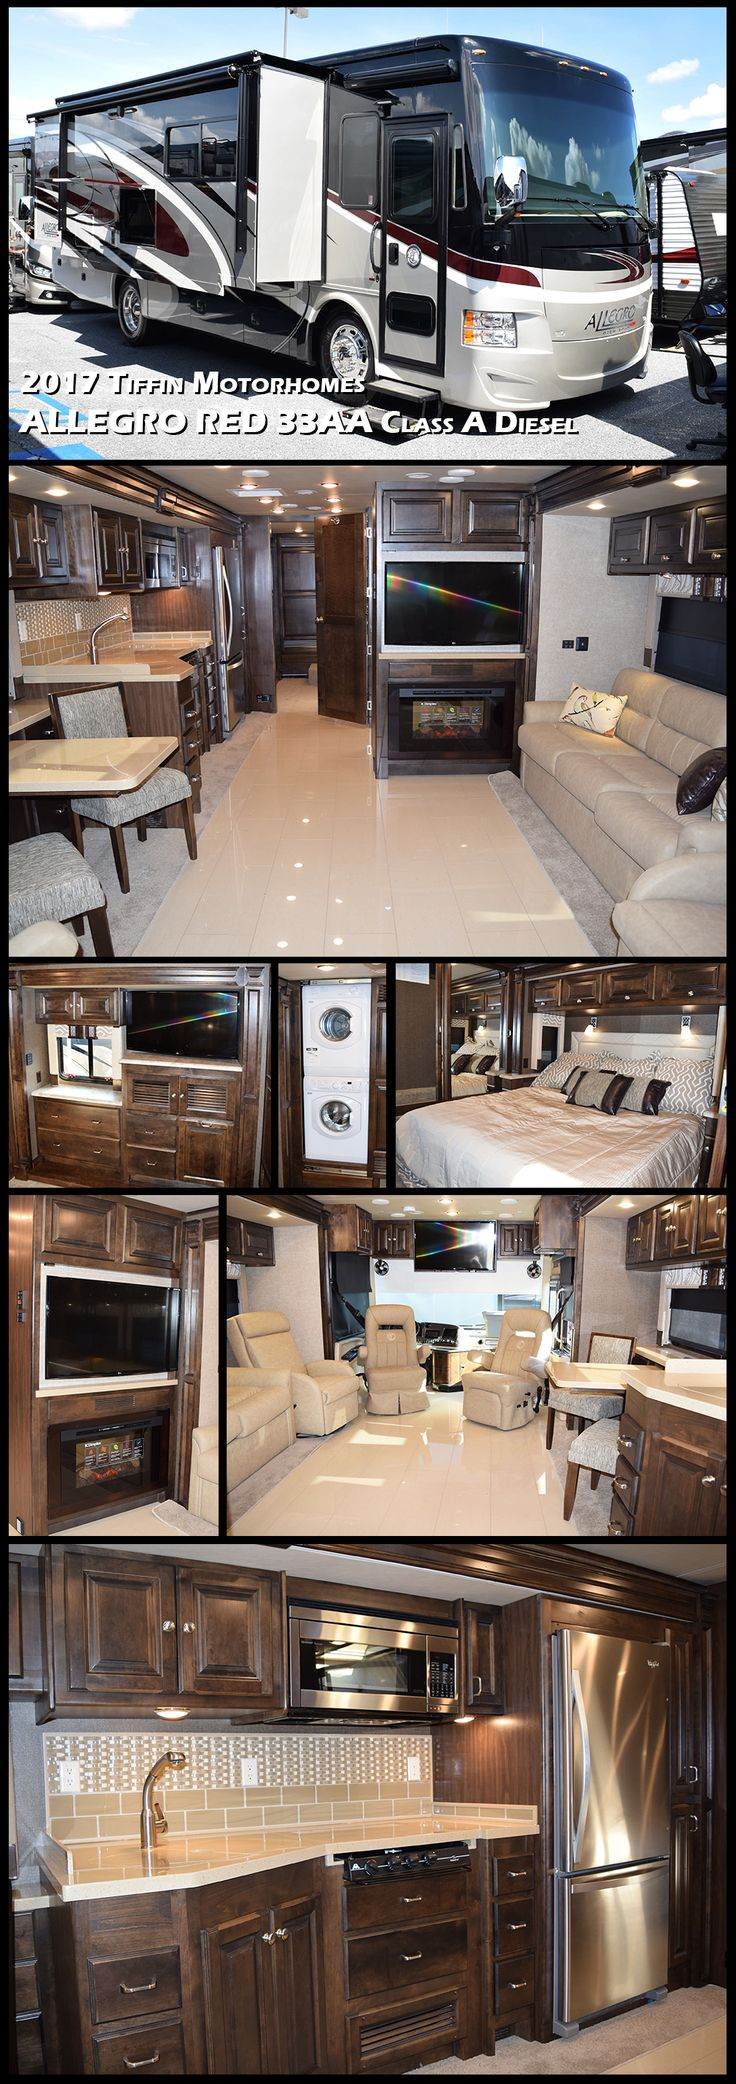 2017 Tiffin Motorhomes ALLEGRO RED 33AA -  The most value-packed model in the Tiffin line-up. This Class A Diesel ups the ante for other RV manufacturers. Combining the value of the classic Allegro with the power and fuel efficiency of a rear engine diesel, this entry-level pusher is perfect for your next power trip.